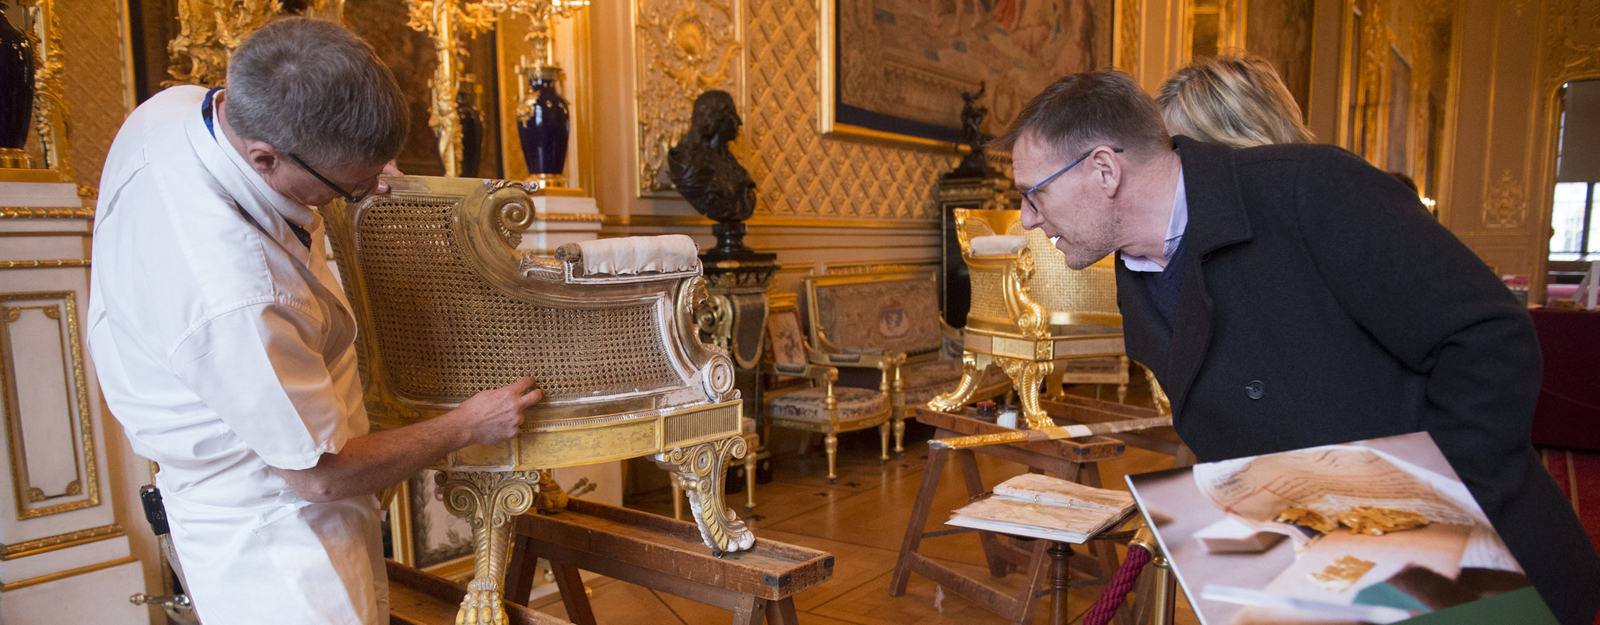 Gilding expert talking to a visitor in the Grand Reception Room